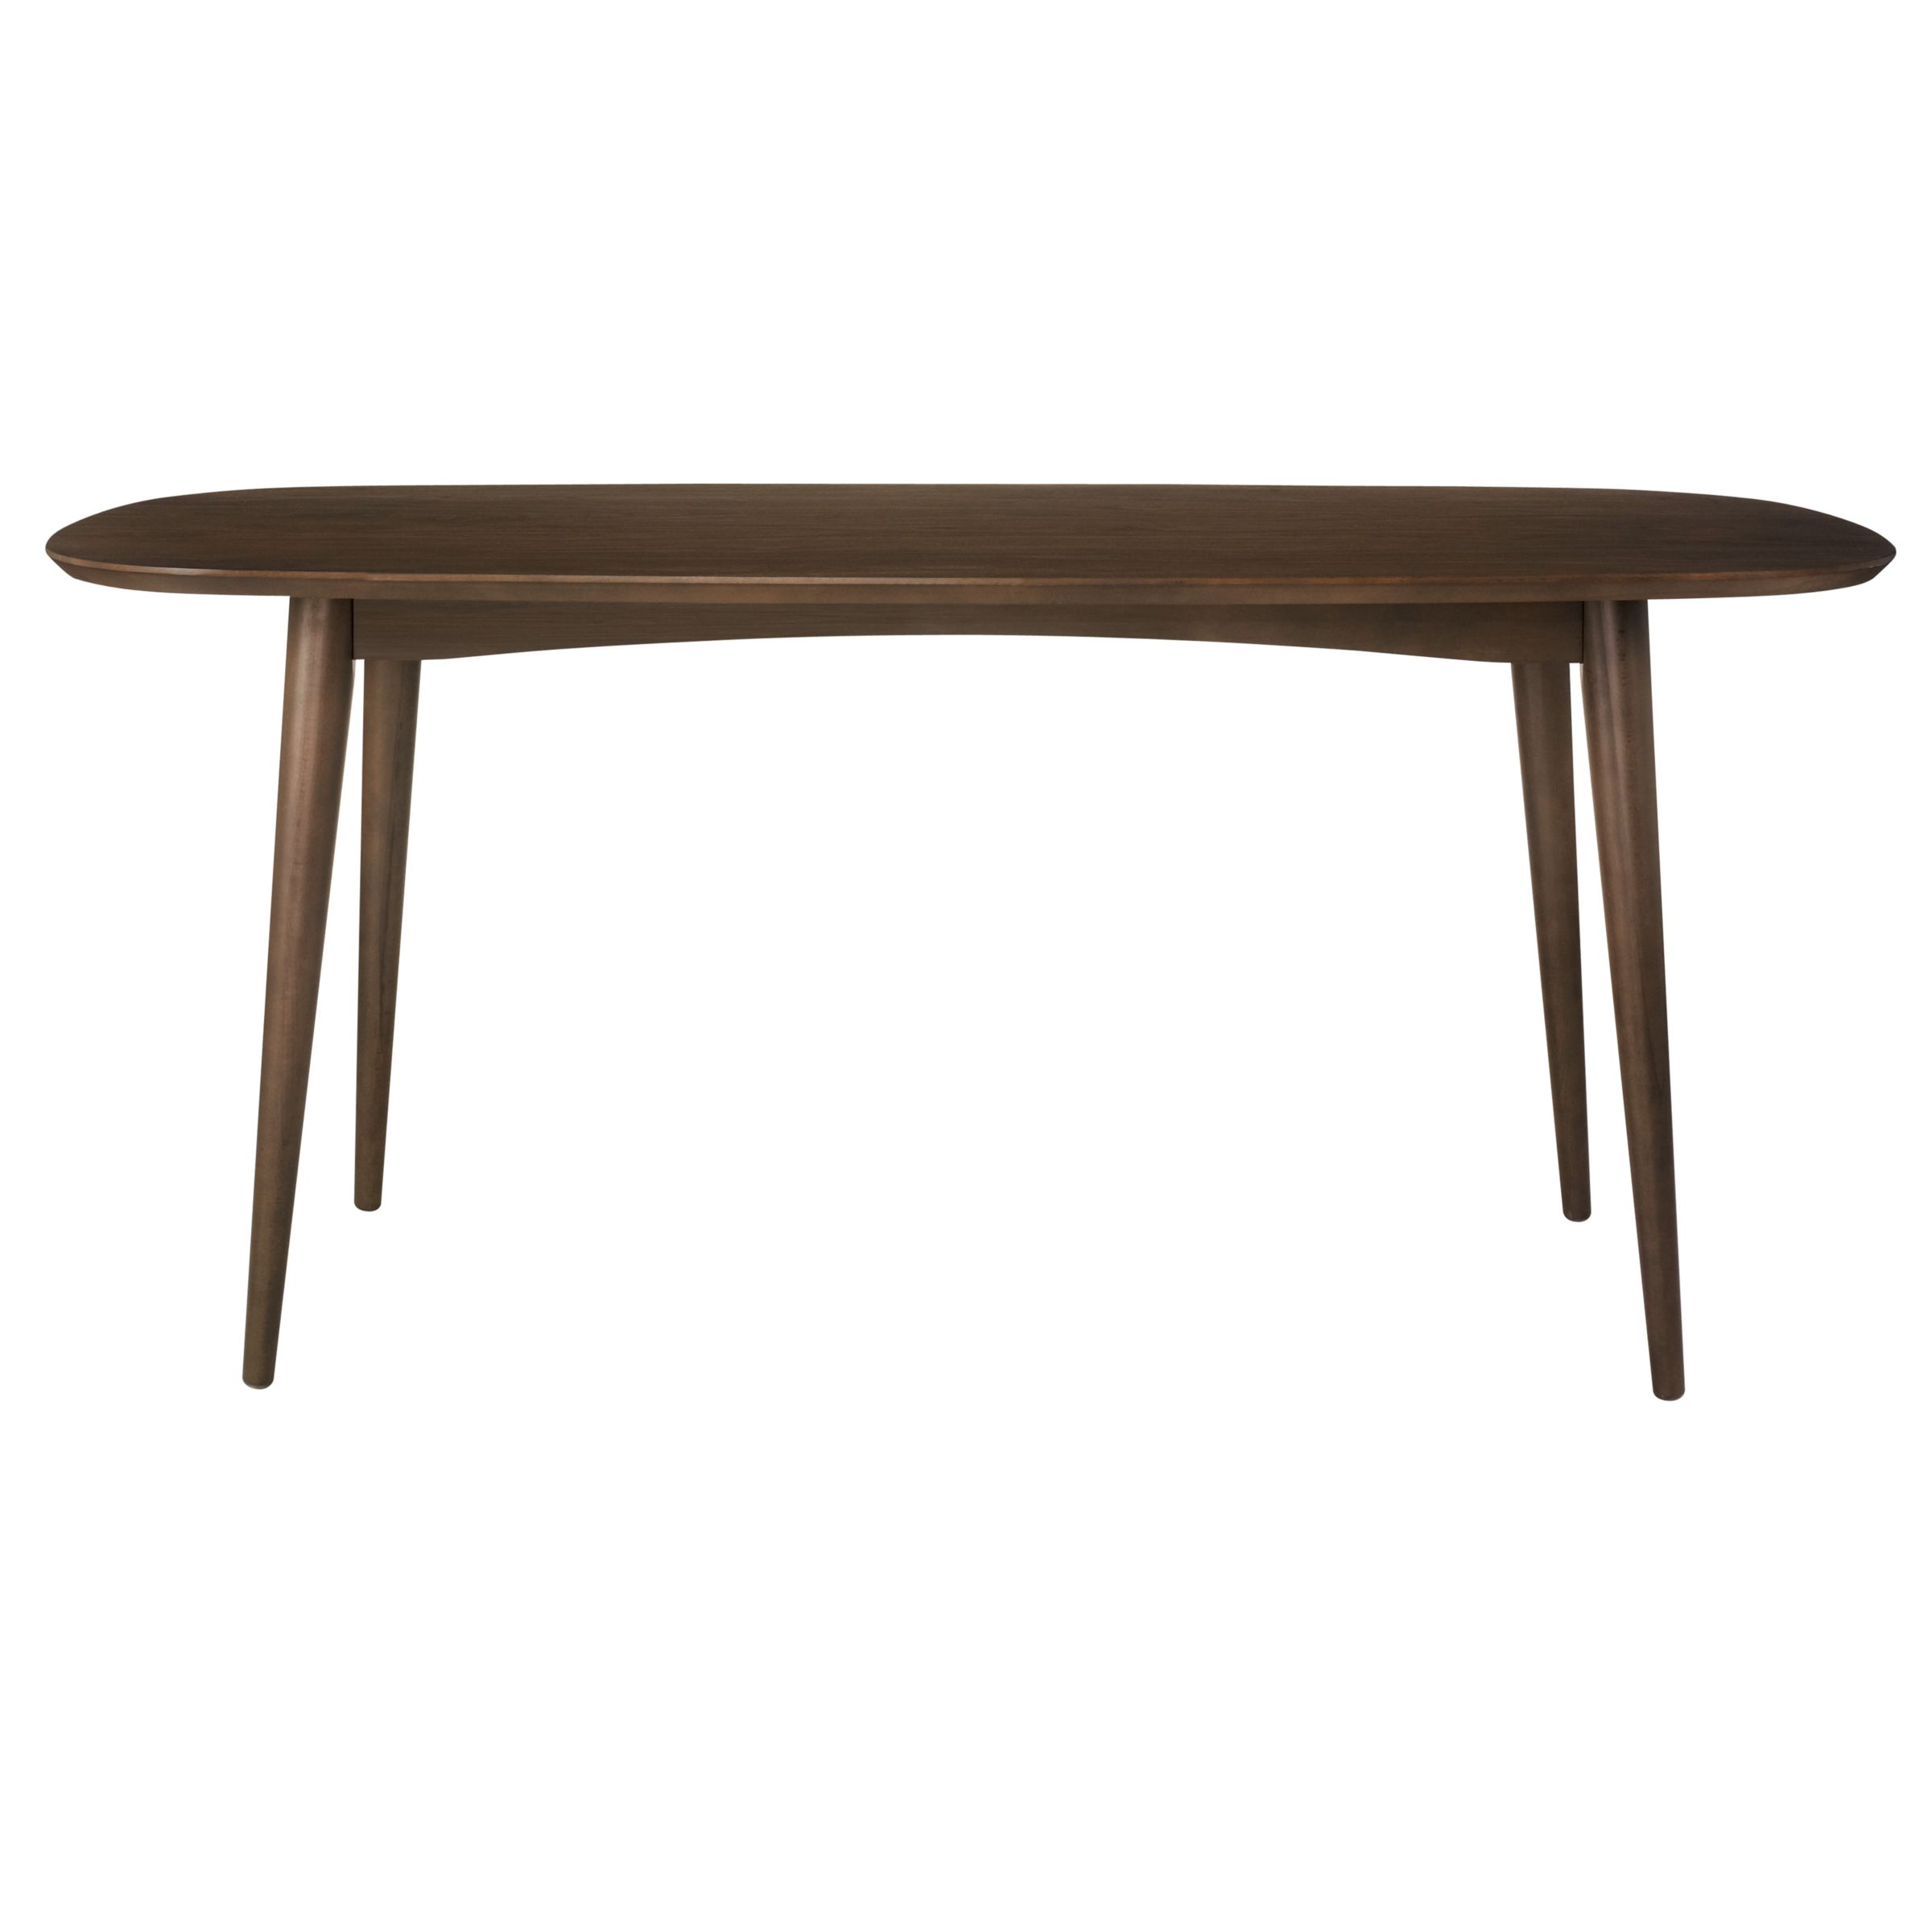 john lewis dining tables : 231289582 from www.comparestoreprices.co.uk size 1600 x 1600 jpeg 71kB